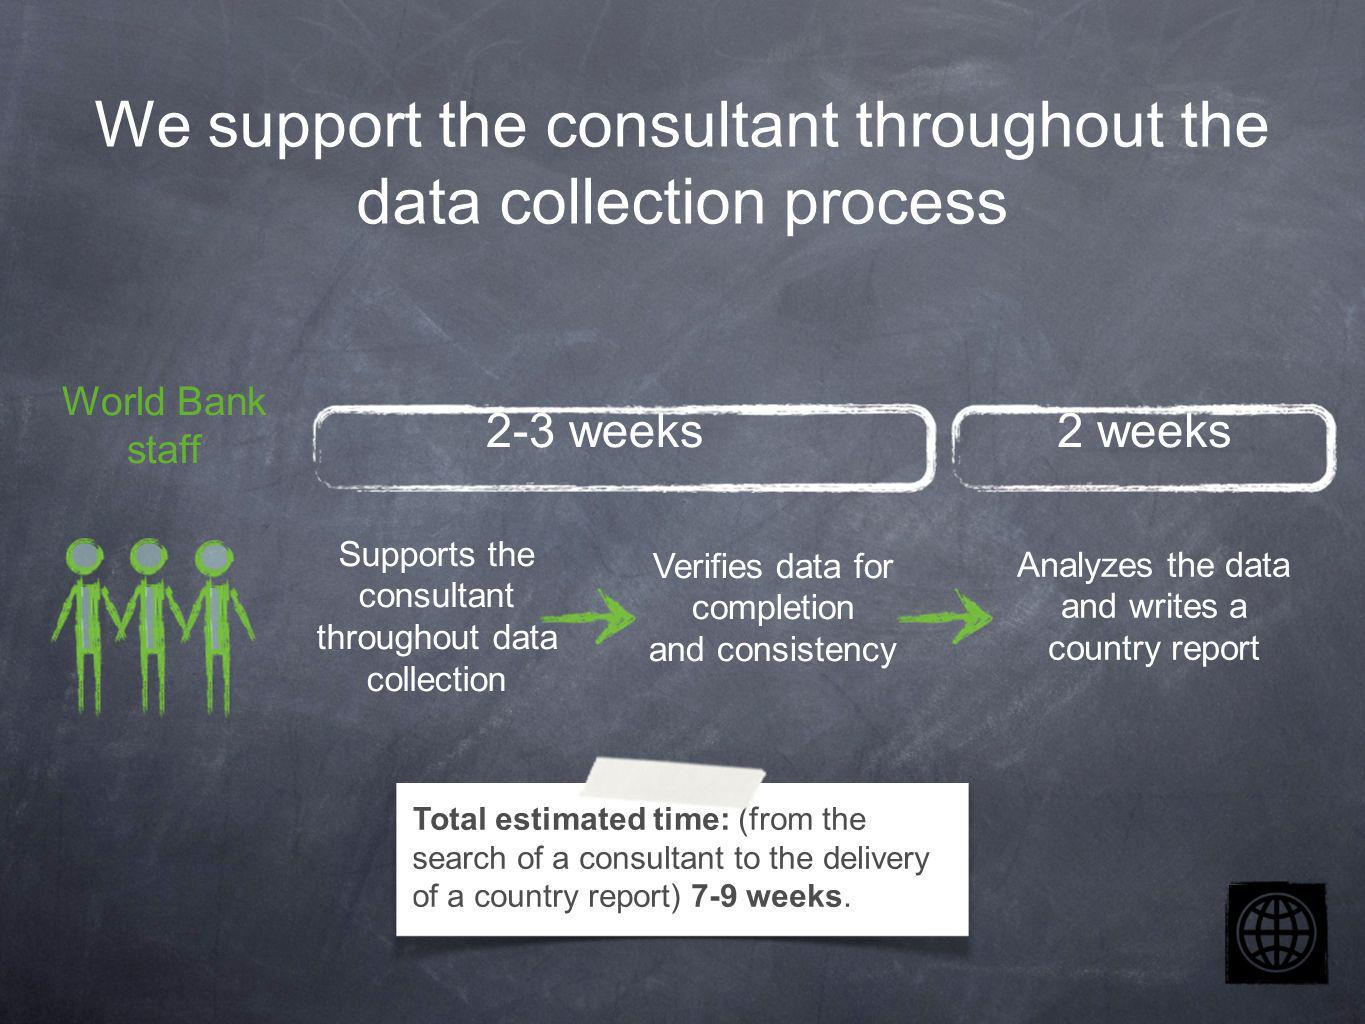 World Bank staff Supports the consultant throughout data collection Verifies data for completion and consistency Analyzes the data and writes a country report We support the consultant throughout the data collection process 2-3 weeks2 weeks Total estimated time: (from the search of a consultant to the delivery of a country report) 7-9 weeks.